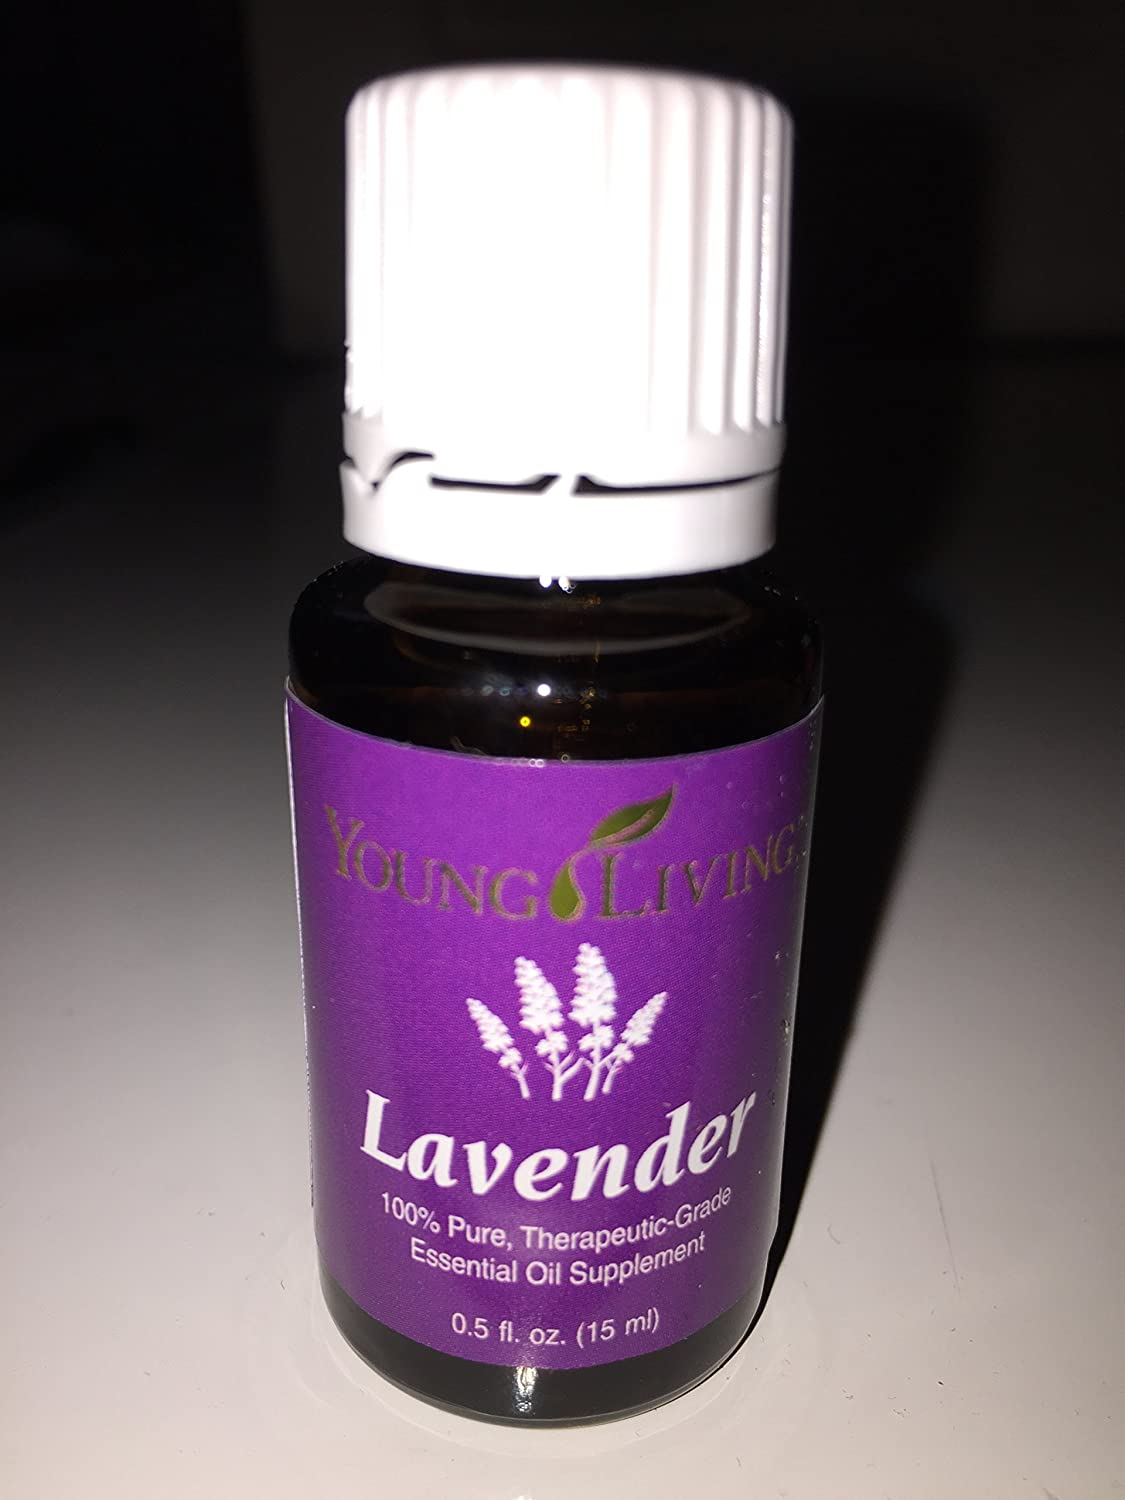 Lavender 15ml Essential Oils by Young Living Essential Oils